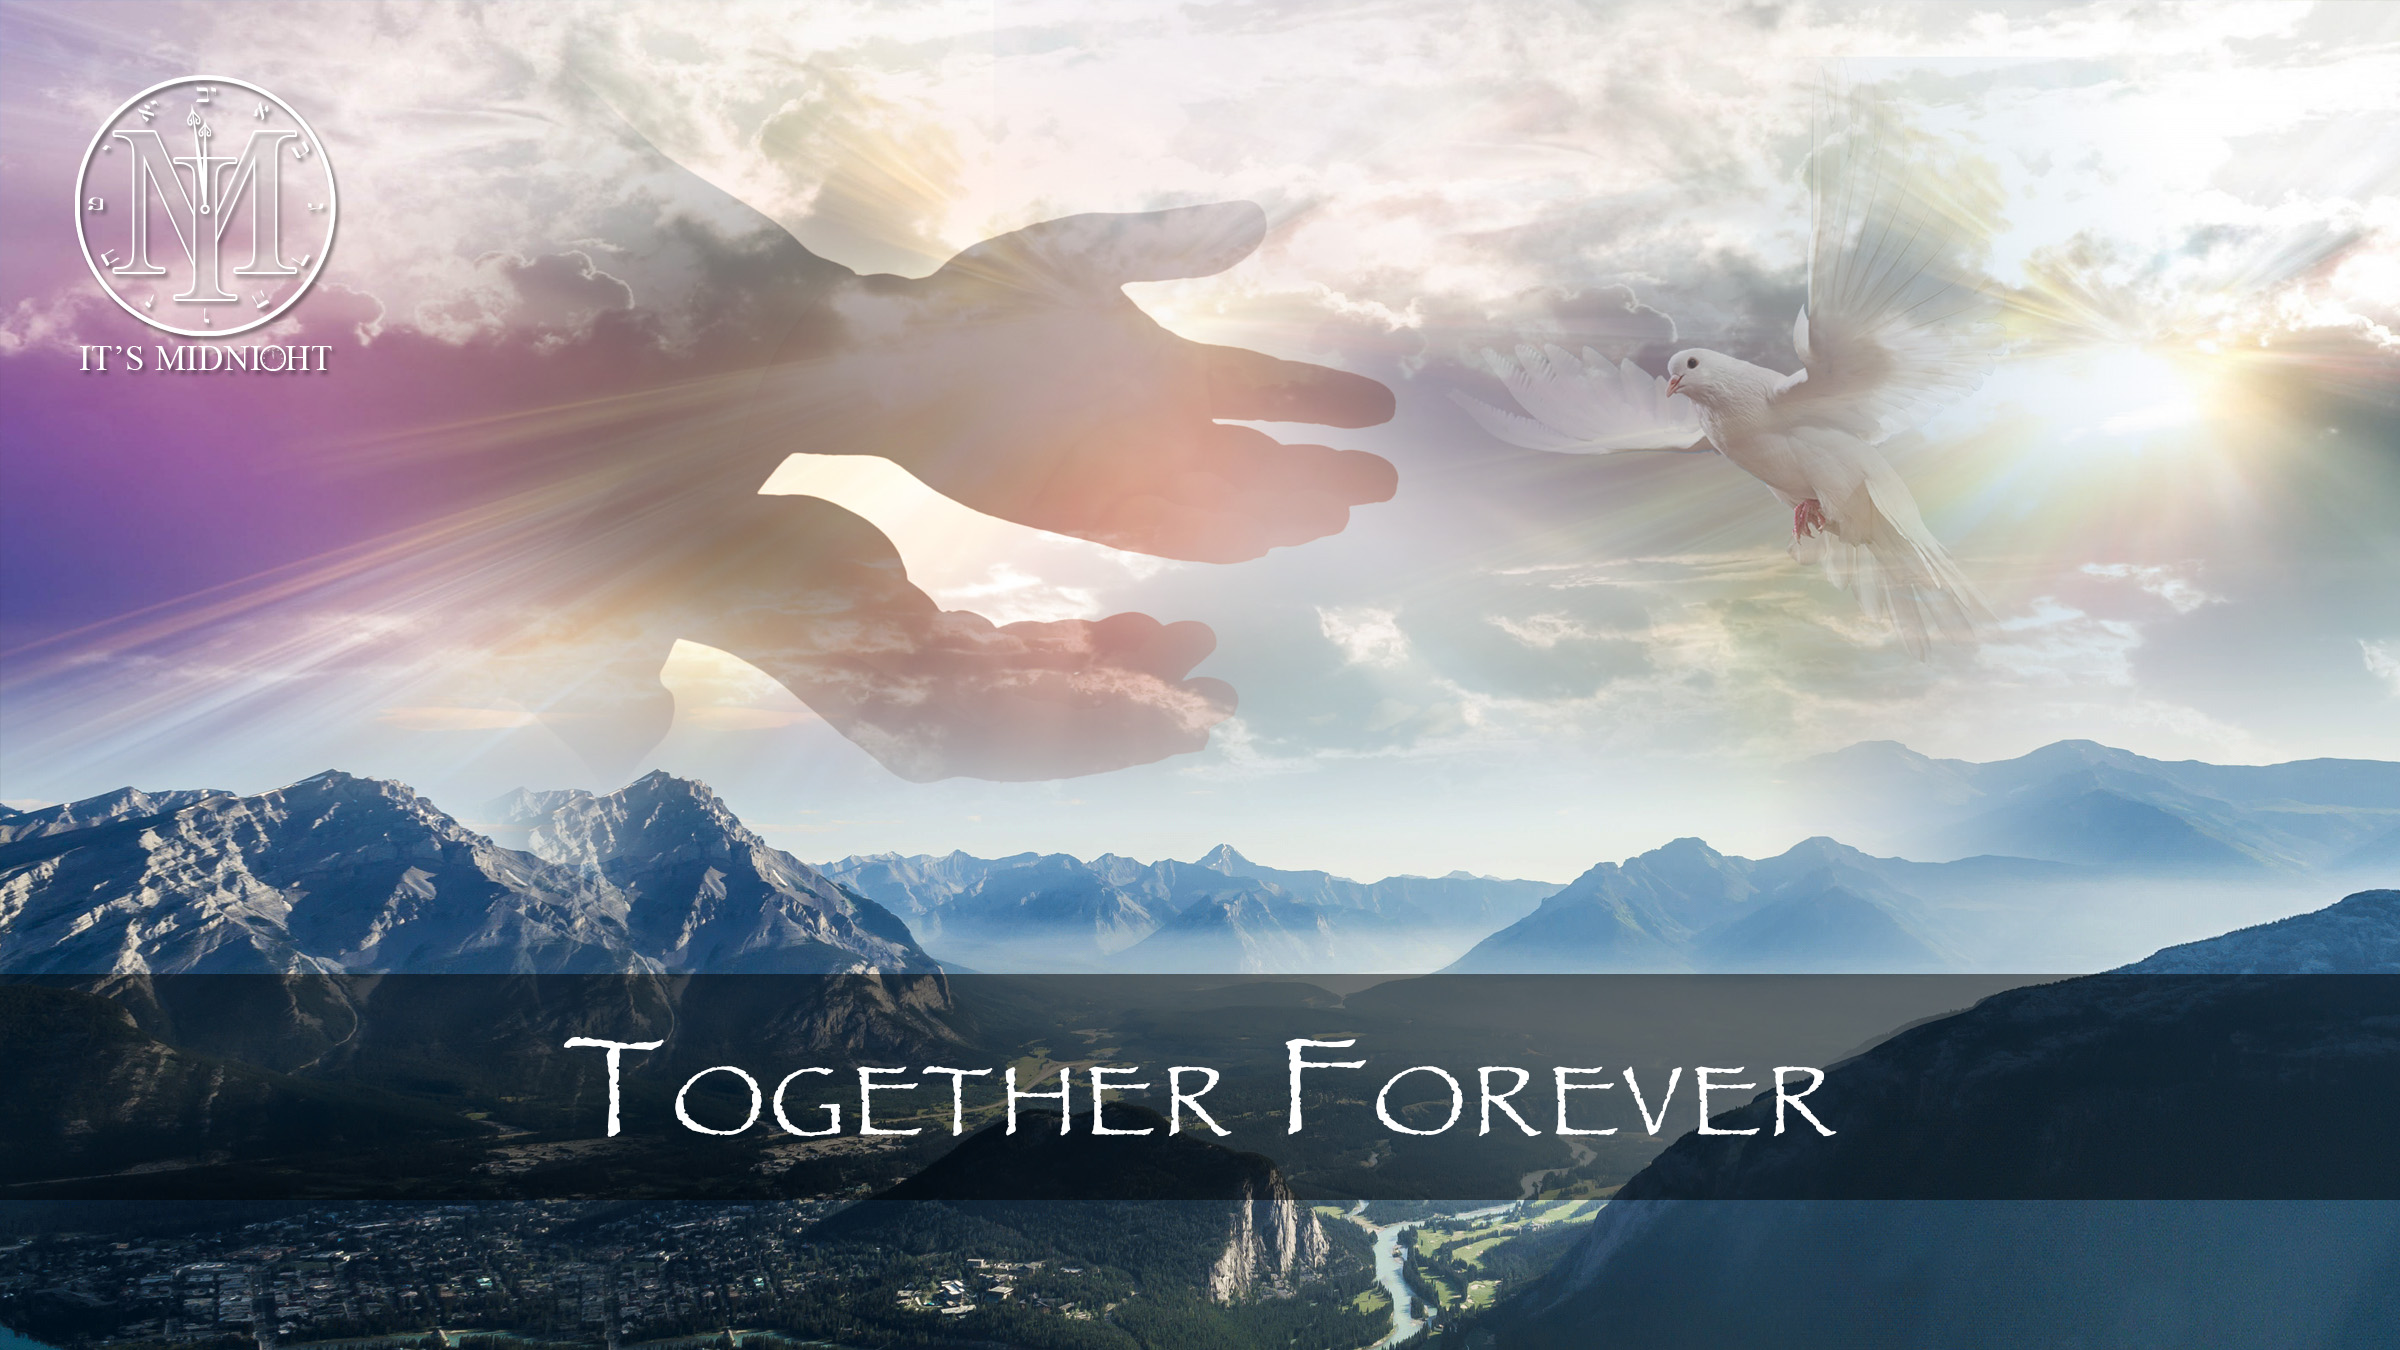 Together Forever Thumbnail (16x9) for YouTube.jpg